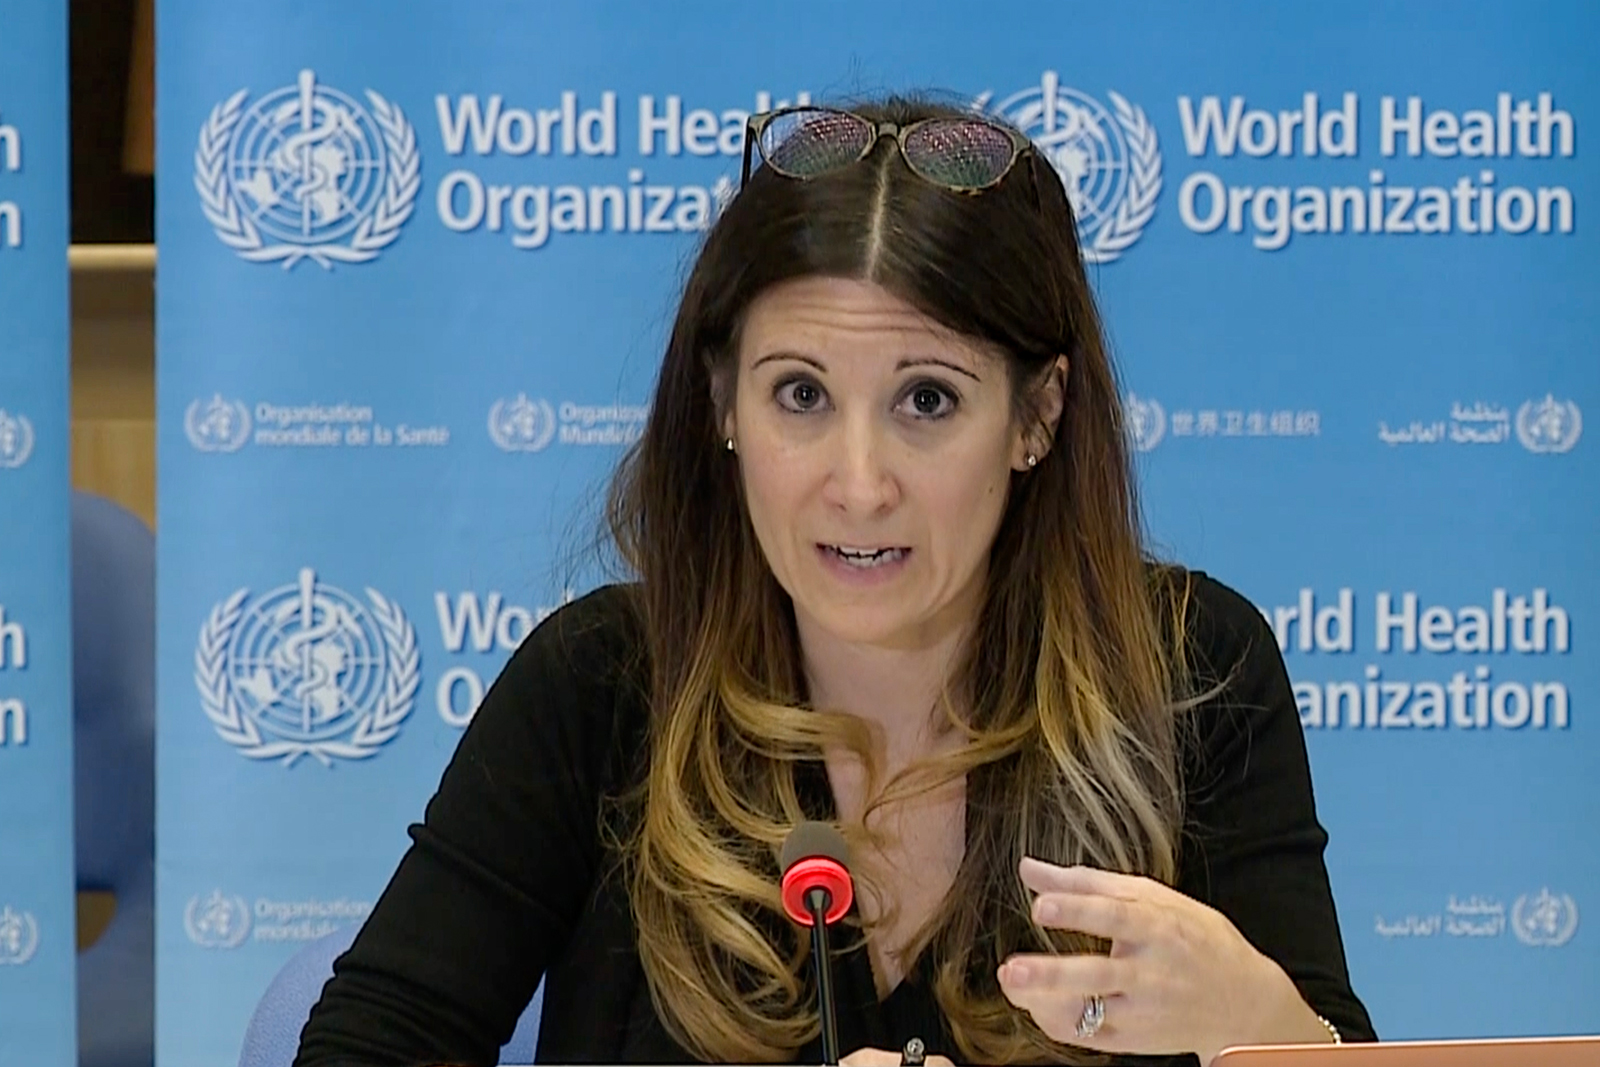 A screengrab taken from a video released by the World Health Organization shows WHO Technical Lead Maria Van Kerkhove speaking at a virtual news briefing on COVID-19 from the WHO headquarters in Geneva, on Monday, April 6.